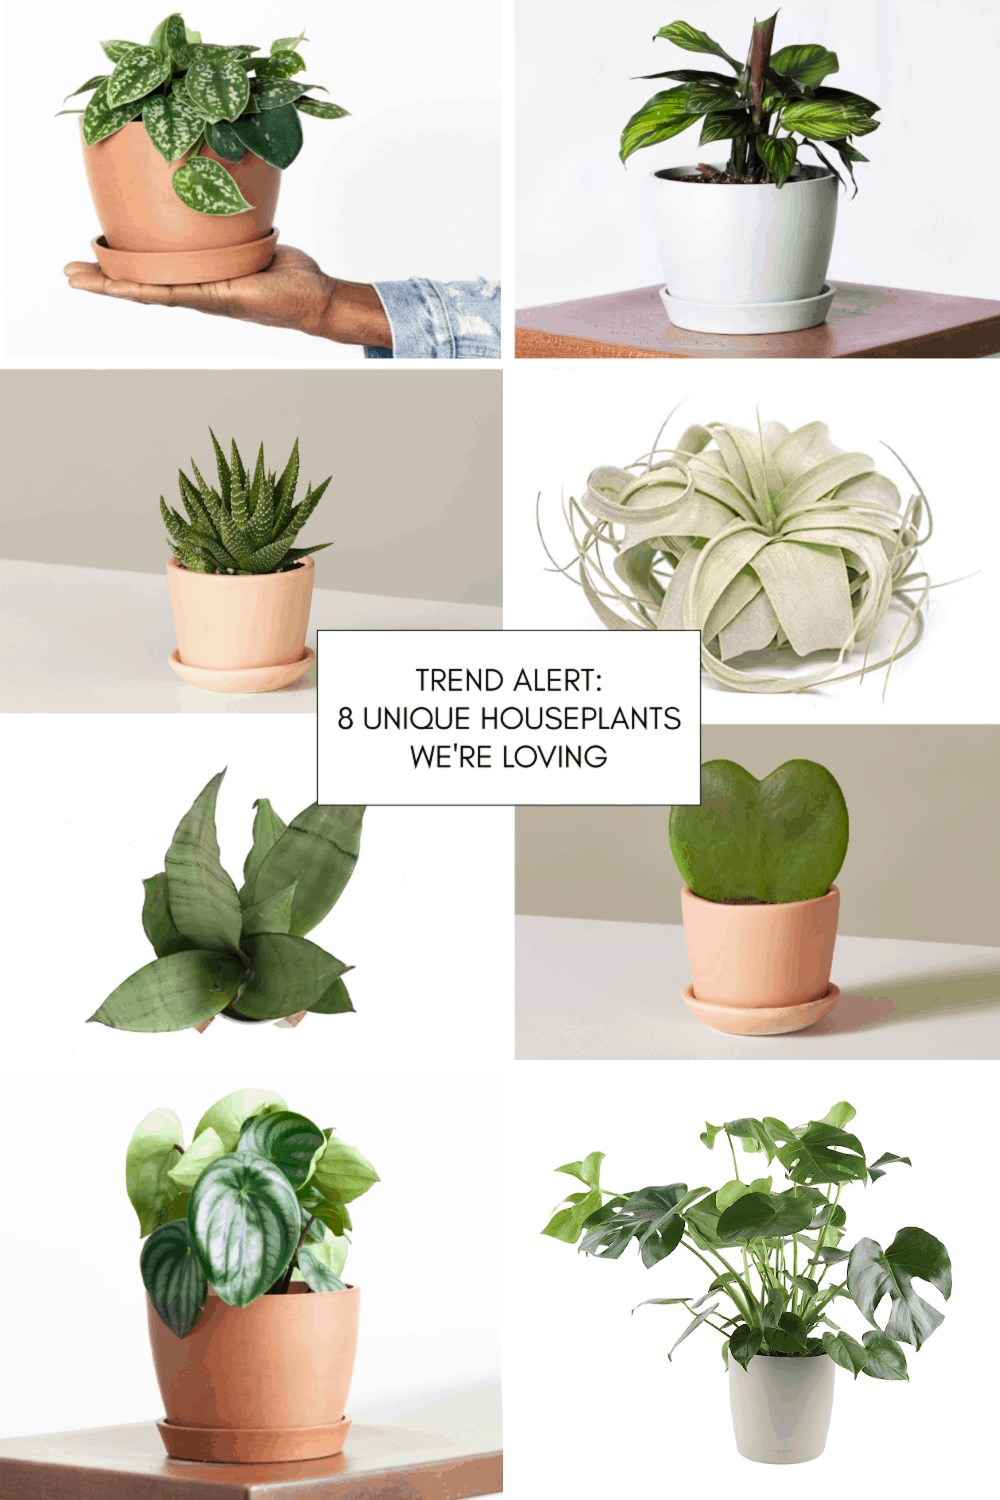 Trend Alert: 8 Unique Houseplants We're Loving by top Houston lifestyle blogger Ashley Rose of Sugar & Cloth